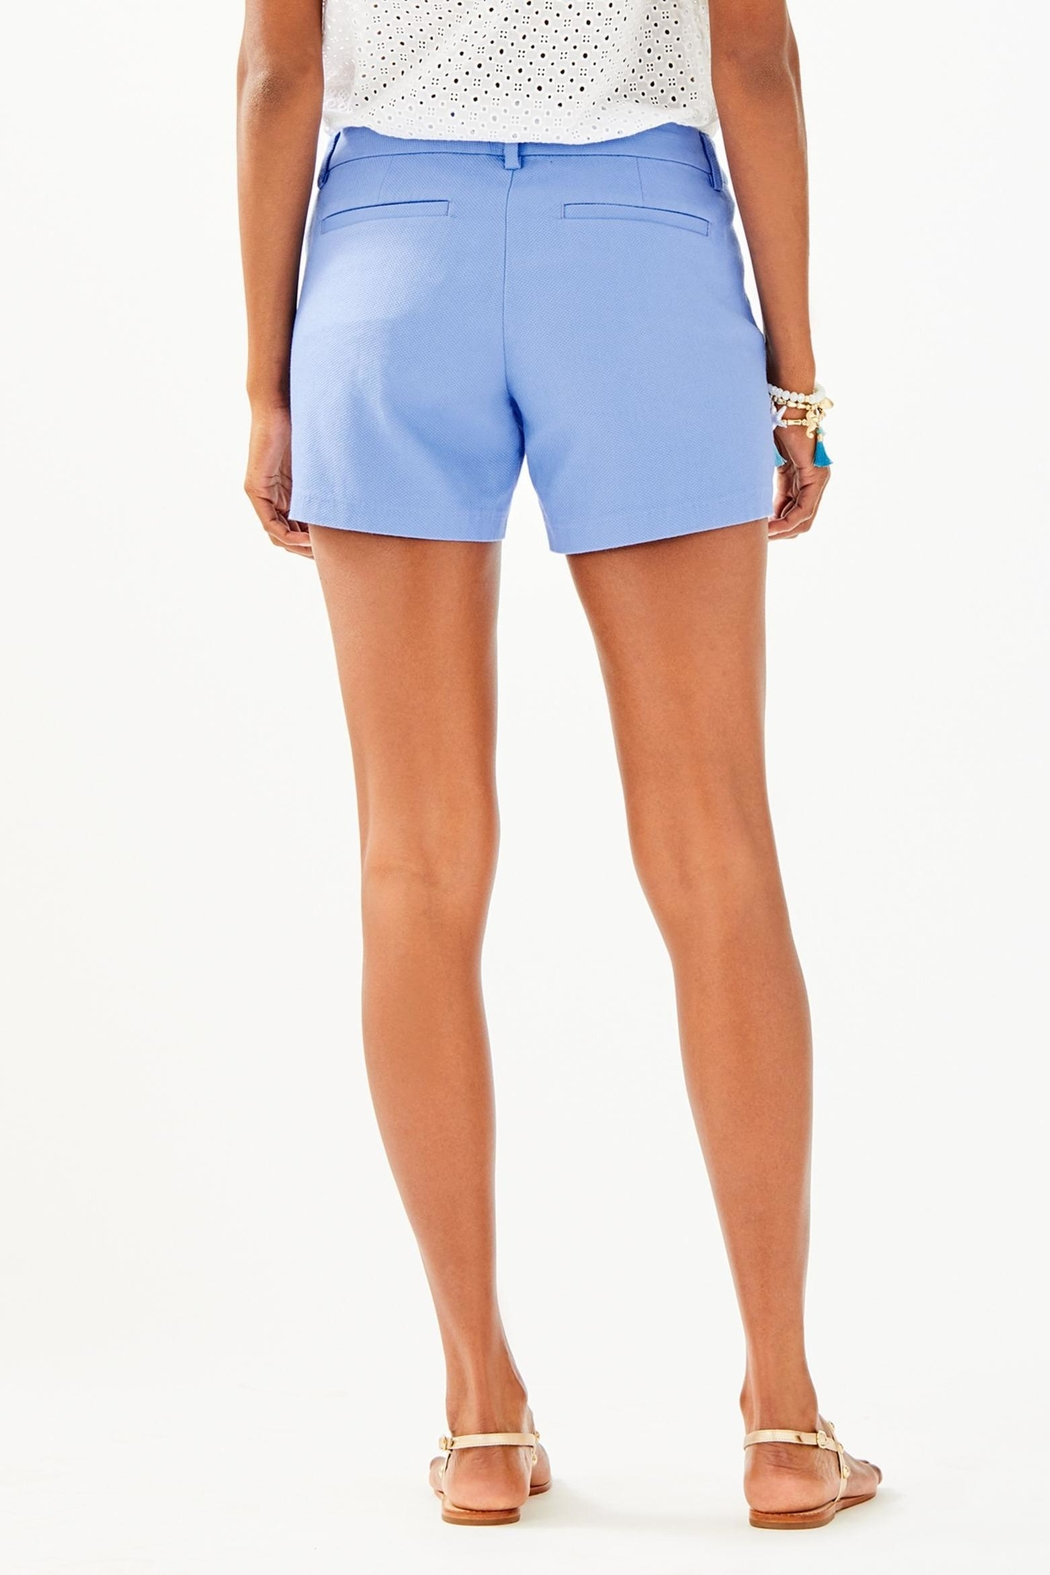 Lilly Pulitzer Callahan Stretch Short - Front Full Image